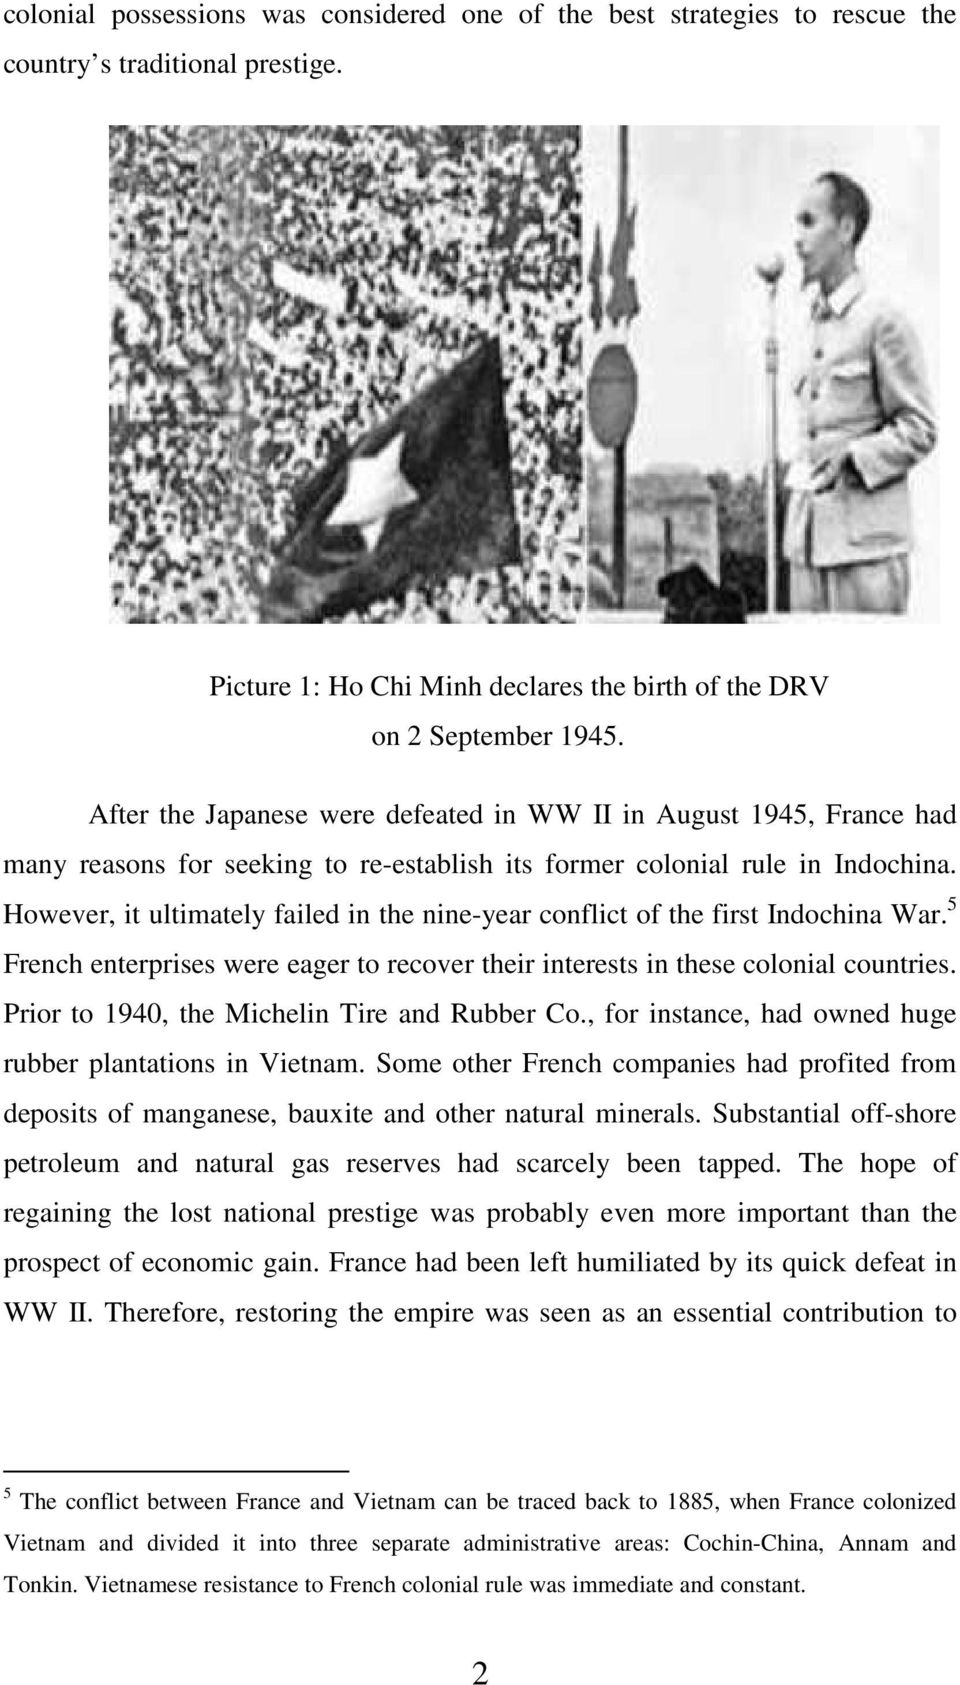 However, it ultimately failed in the nine-year conflict of the first Indochina War. 5 French enterprises were eager to recover their interests in these colonial countries.